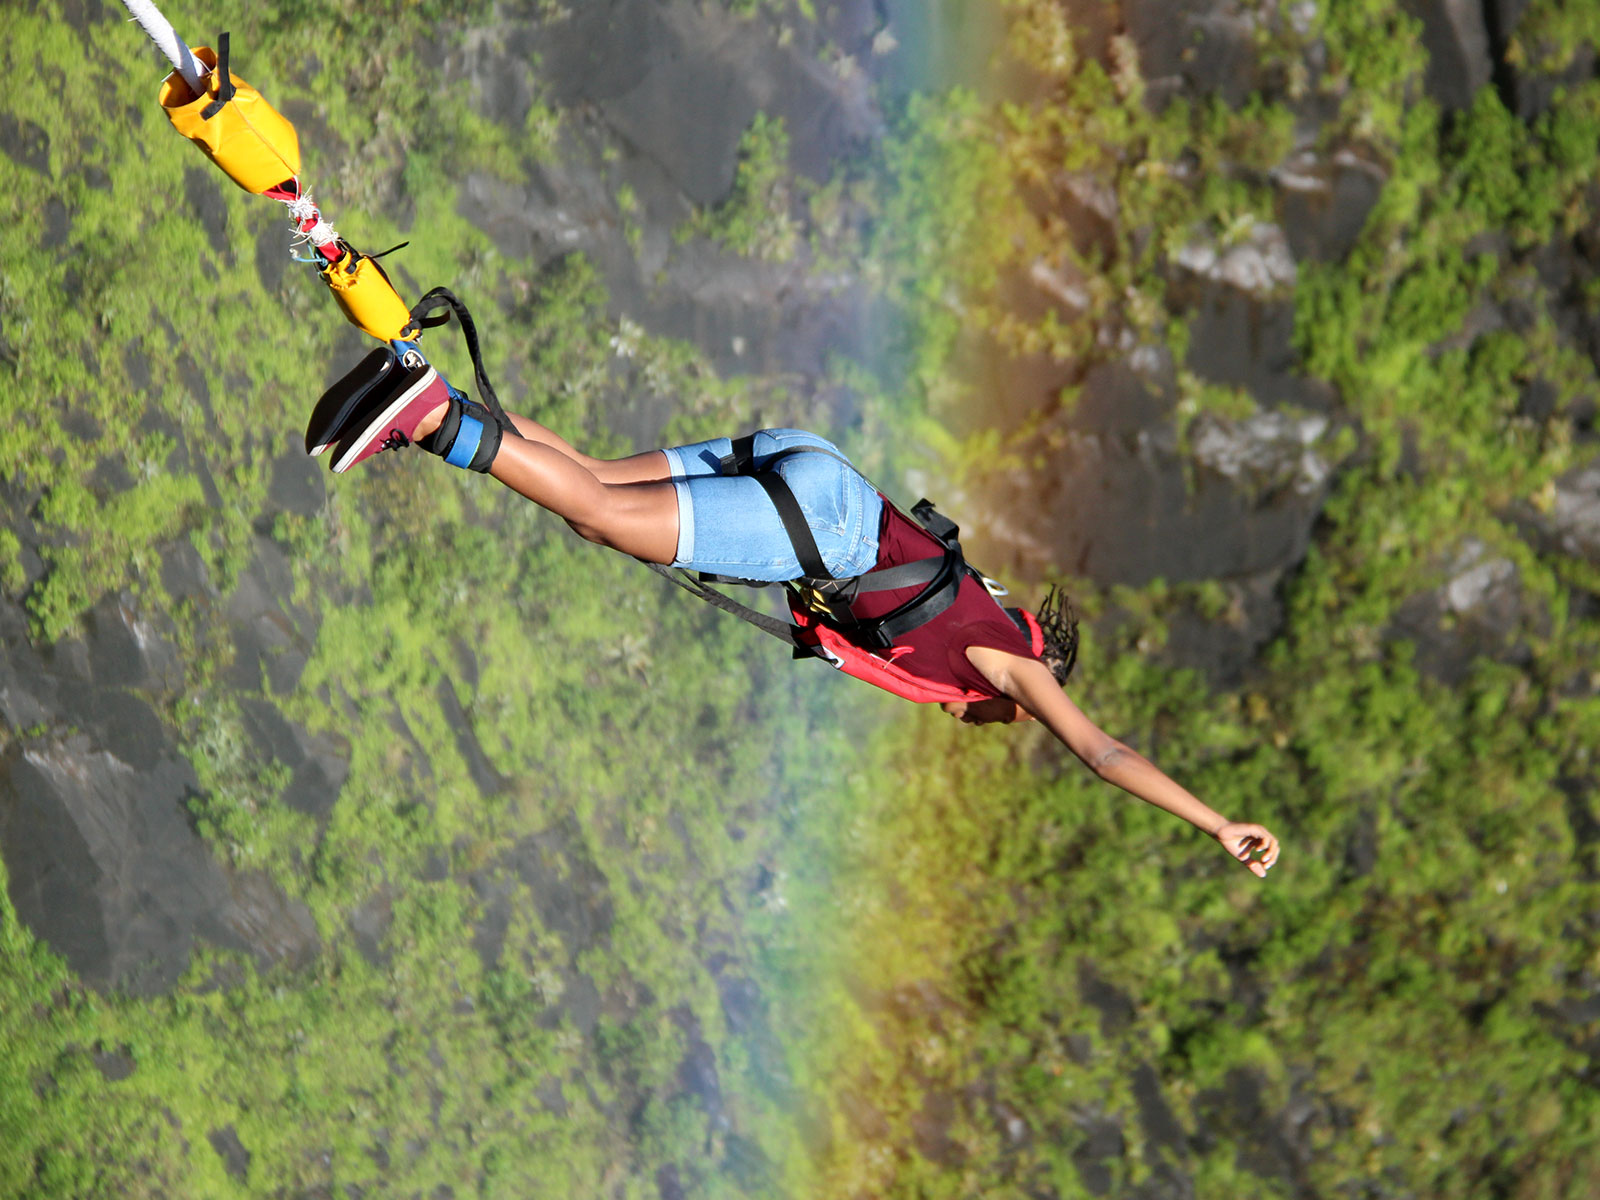 Image source:  Bungee Jump Victoria falls